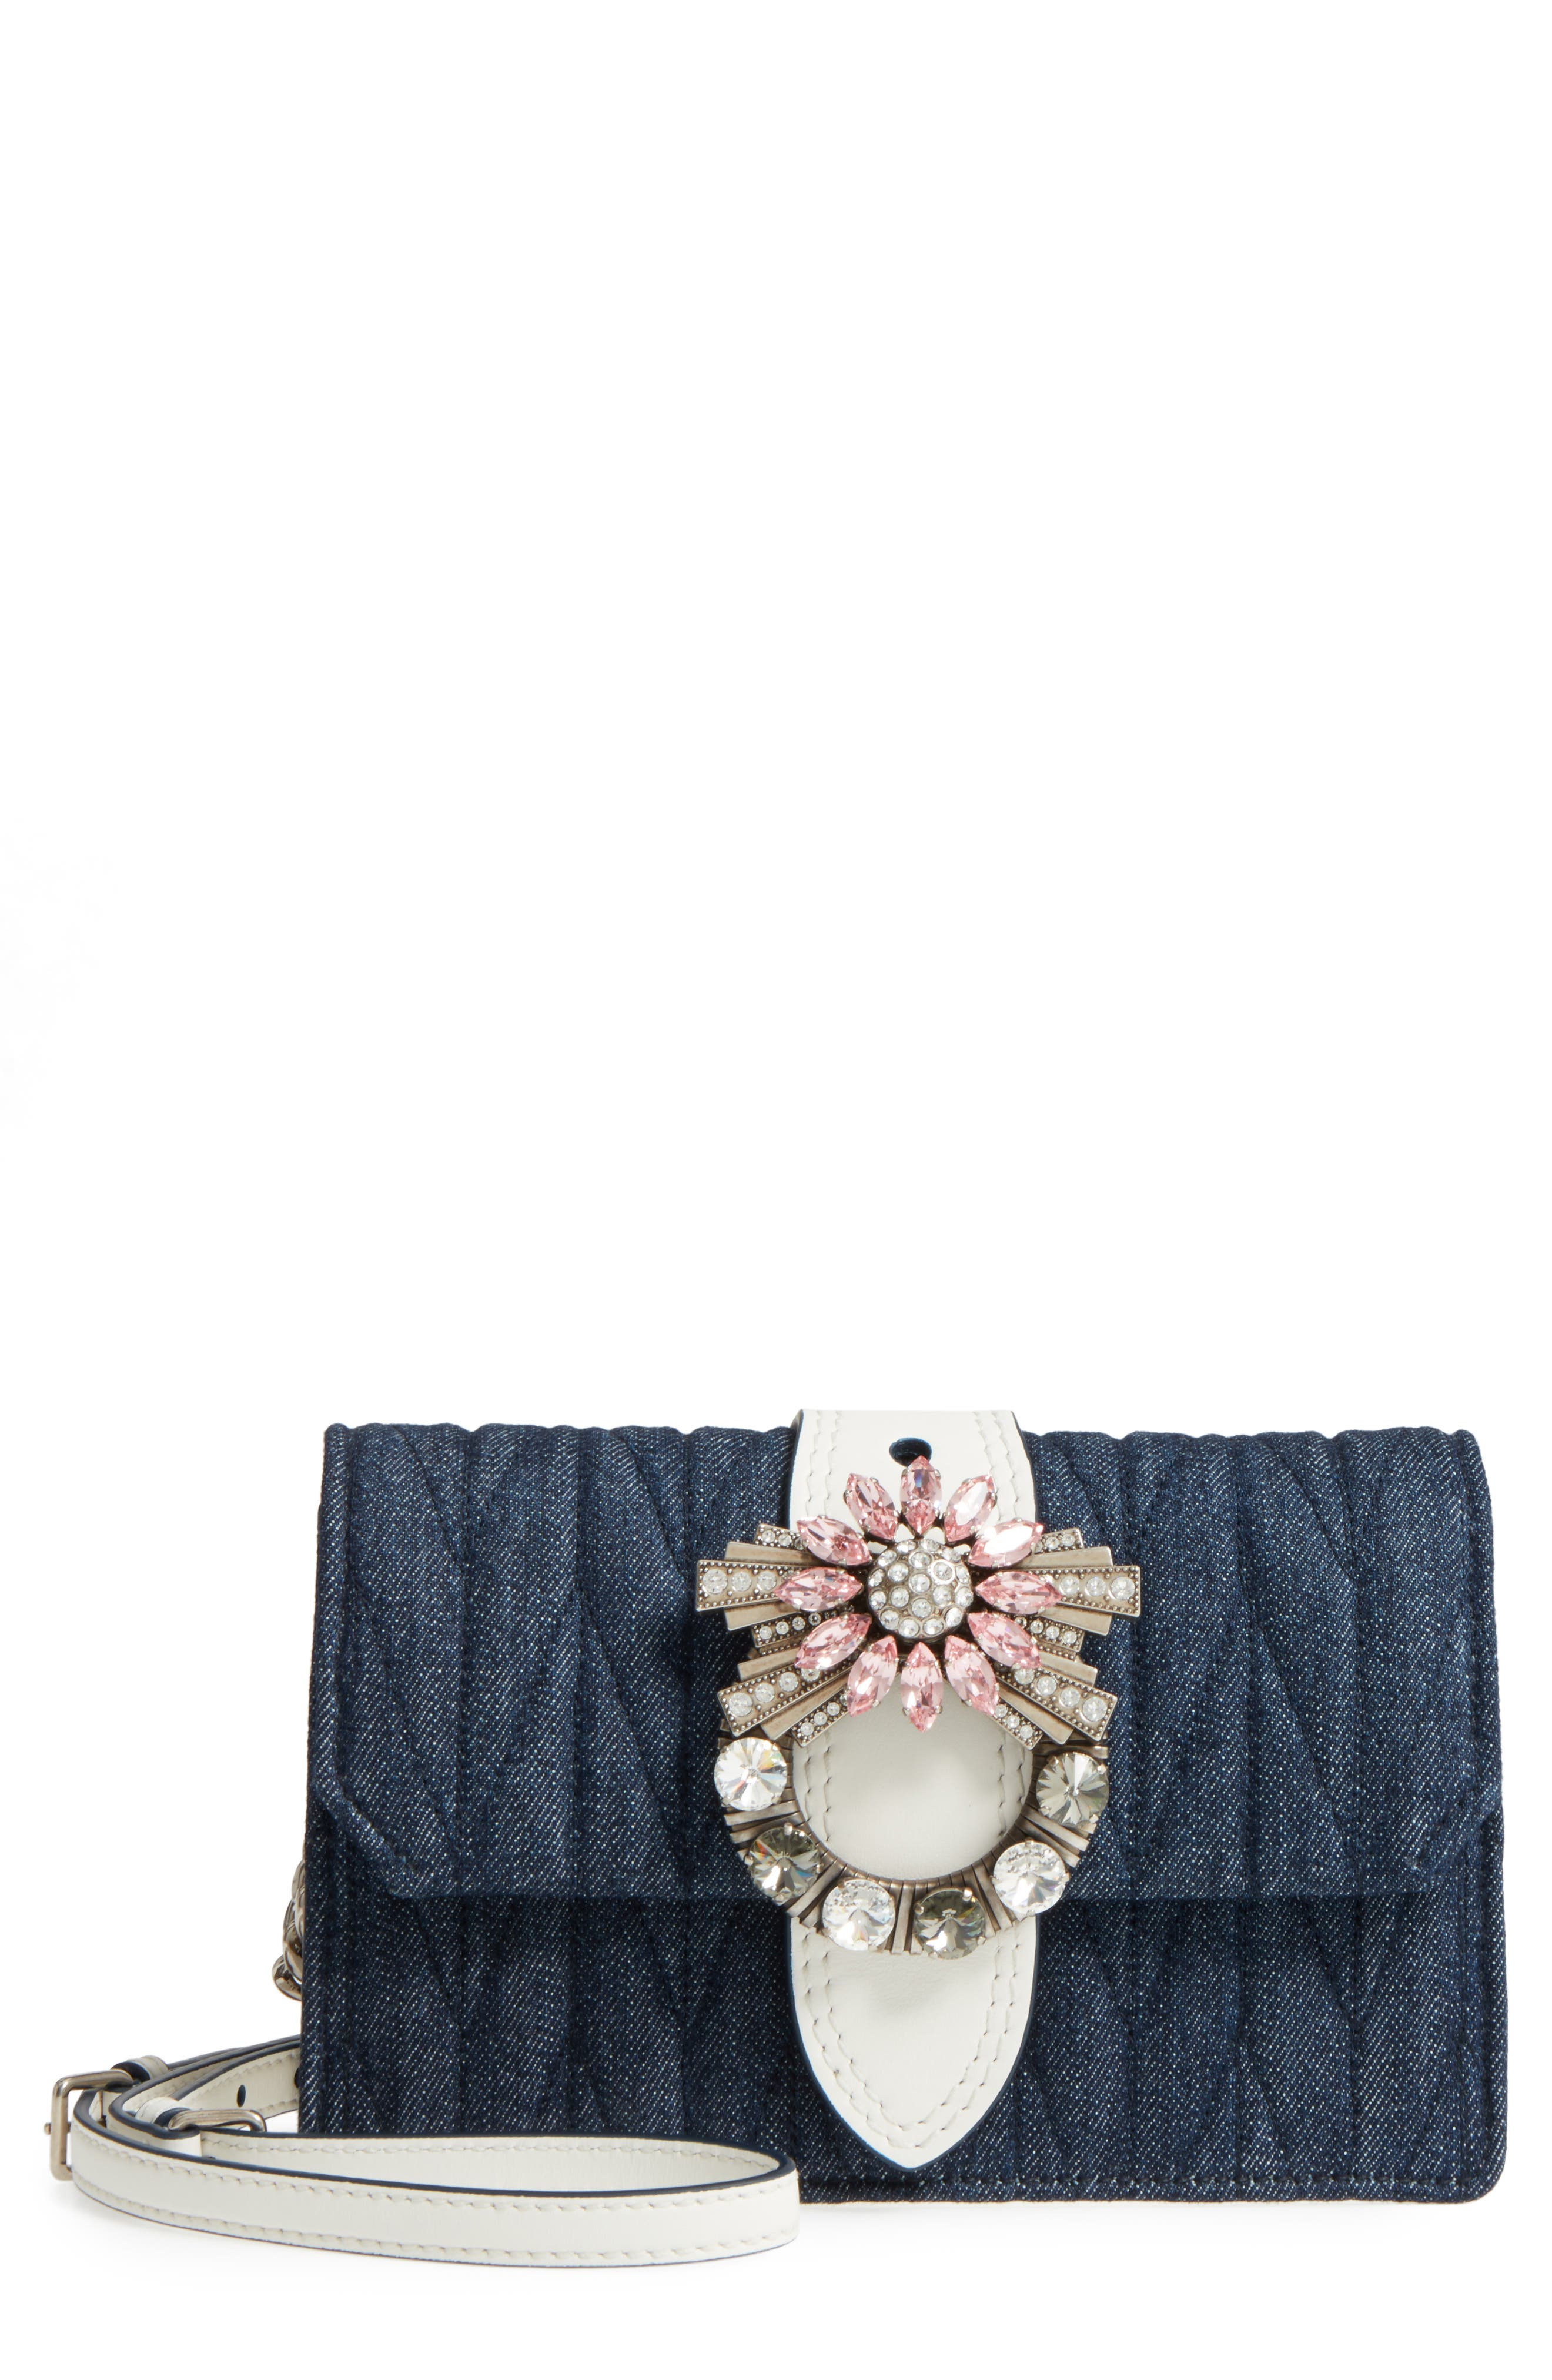 Matelassé Denim Embellished Shoulder Bag,                             Main thumbnail 1, color,                             Blu/ Bianco